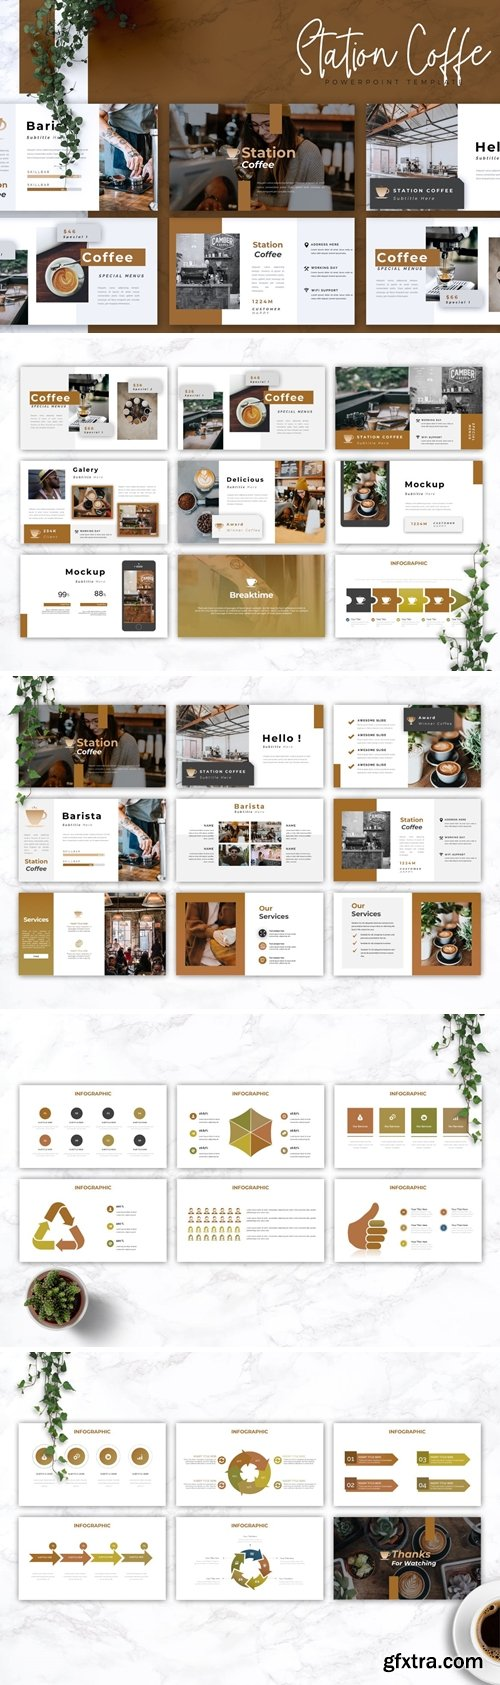 STATION COFFEE - Coffee Shop Powerpoint Google Slides and Keynote Templates